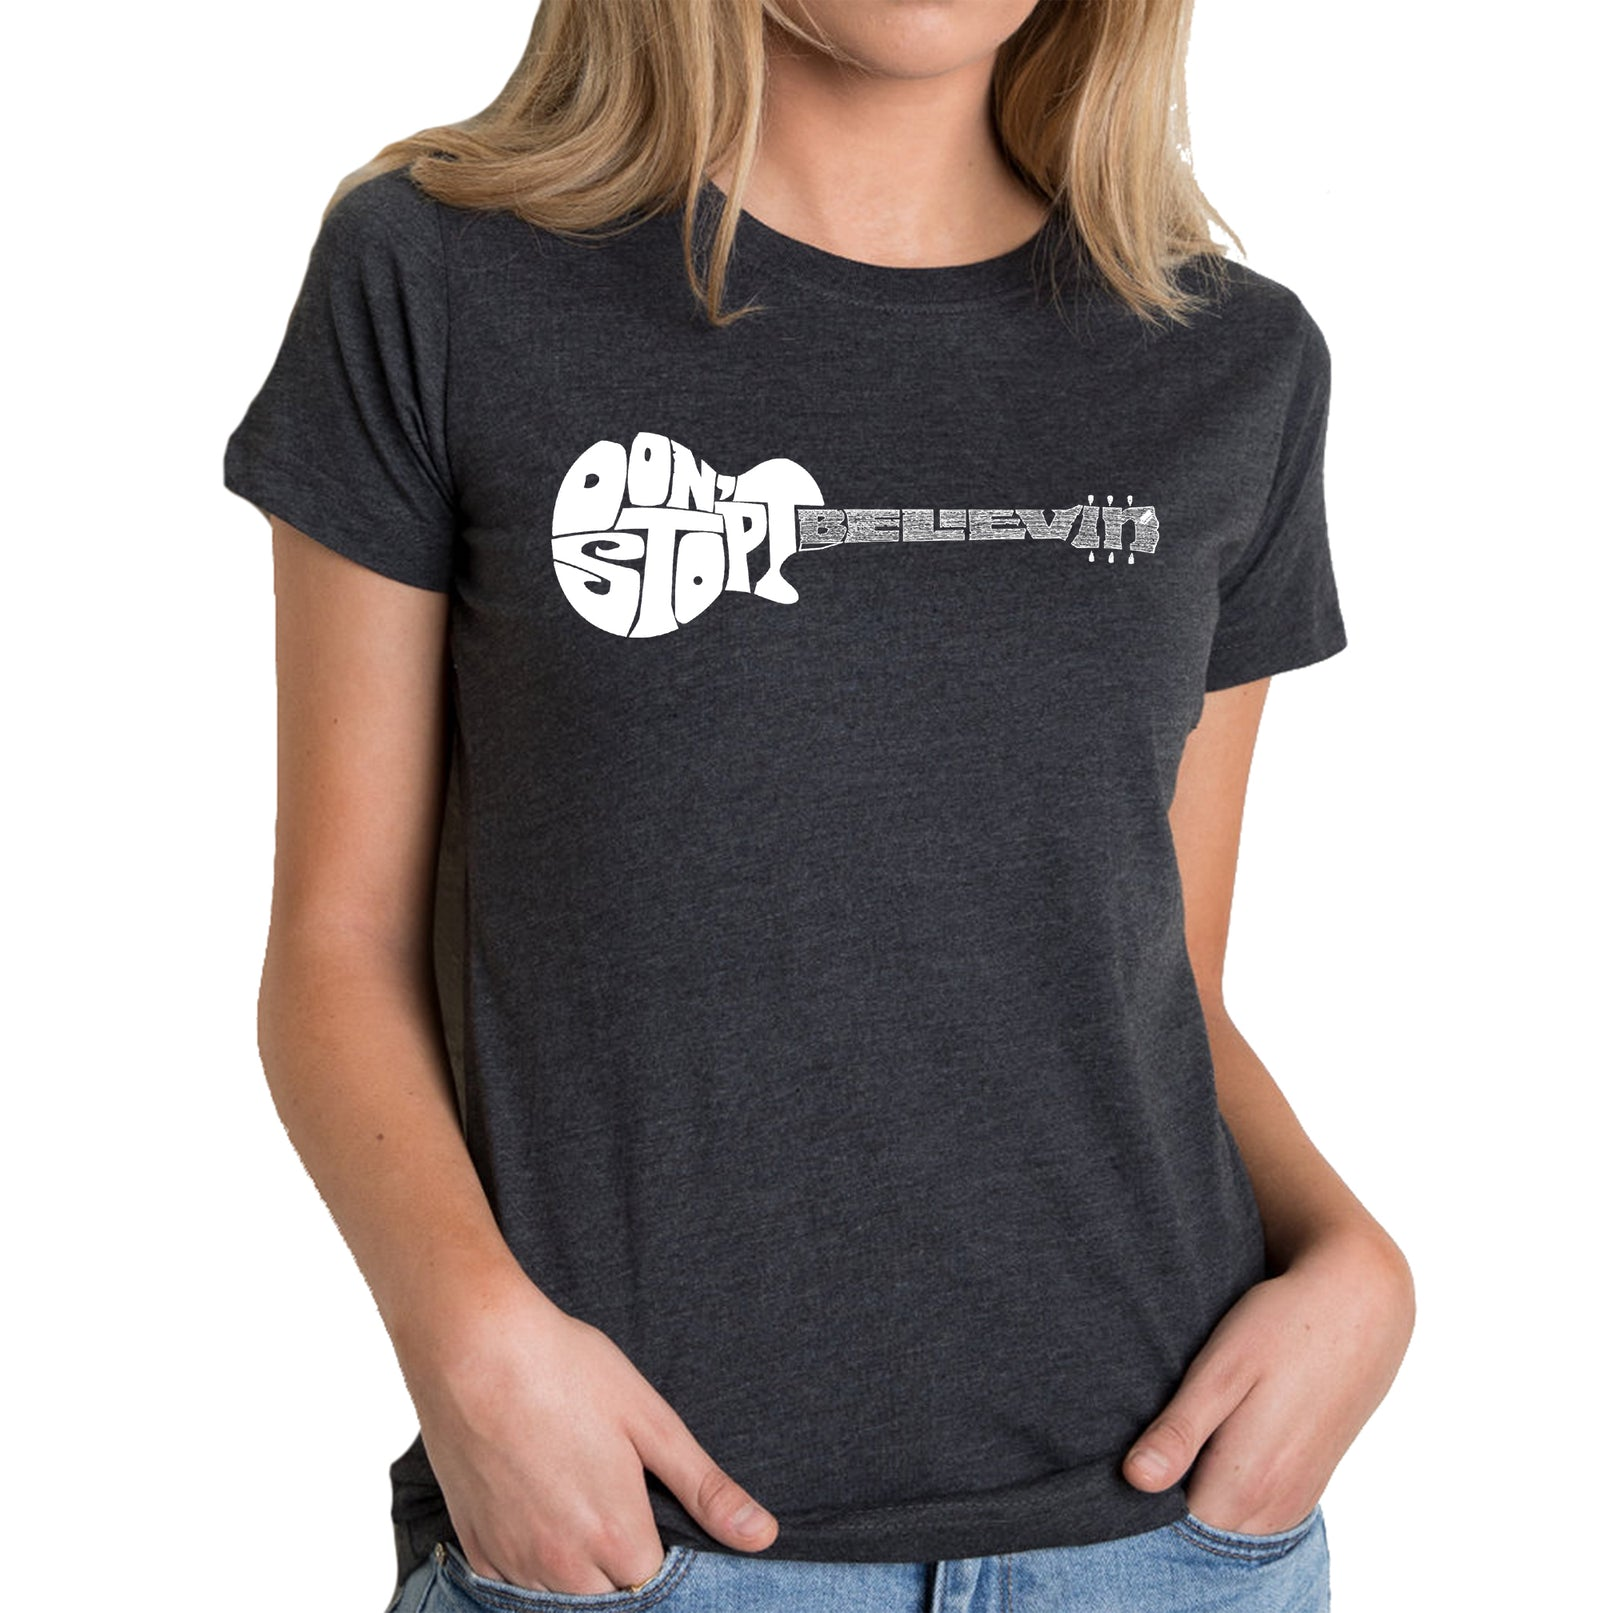 Women's Premium Blend Word Art T-shirt - Don't Stop Believin'